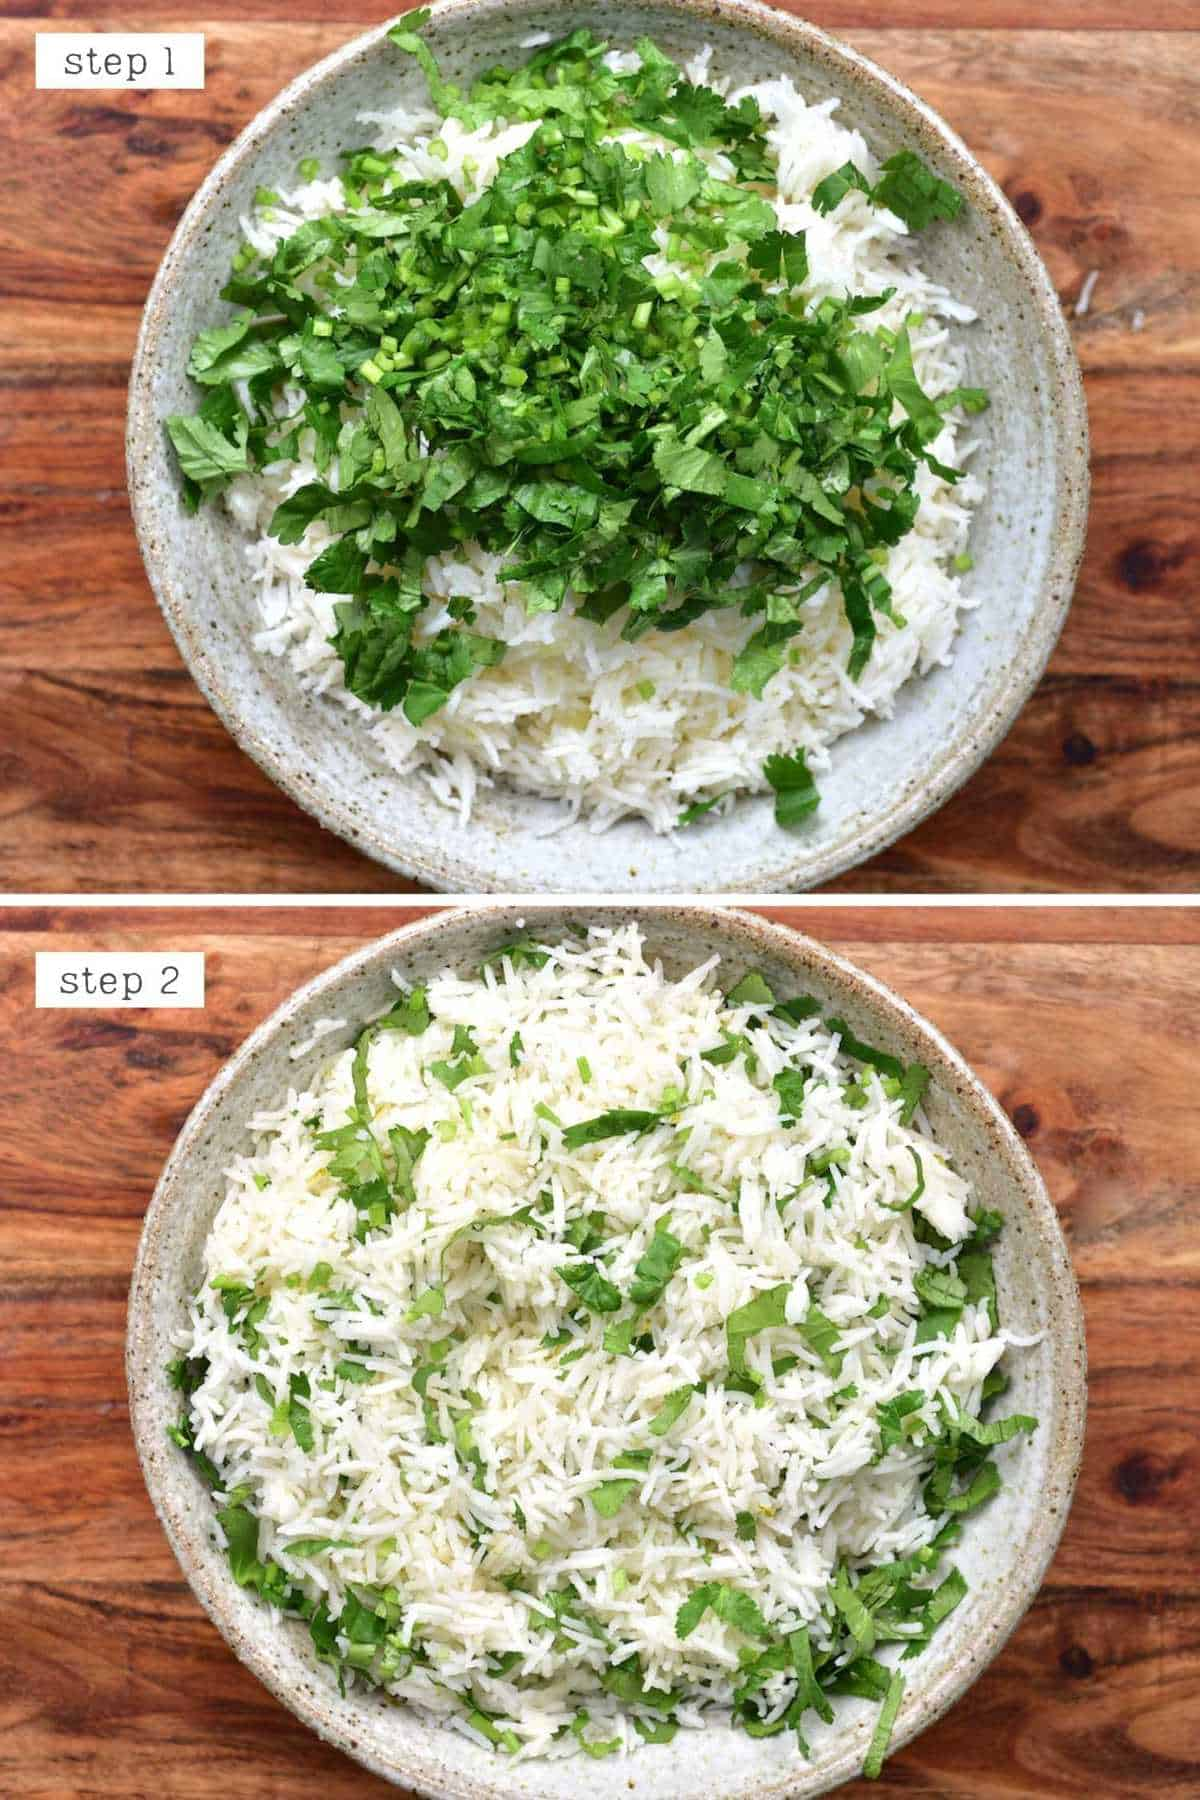 Steps for adding cilantro to rice